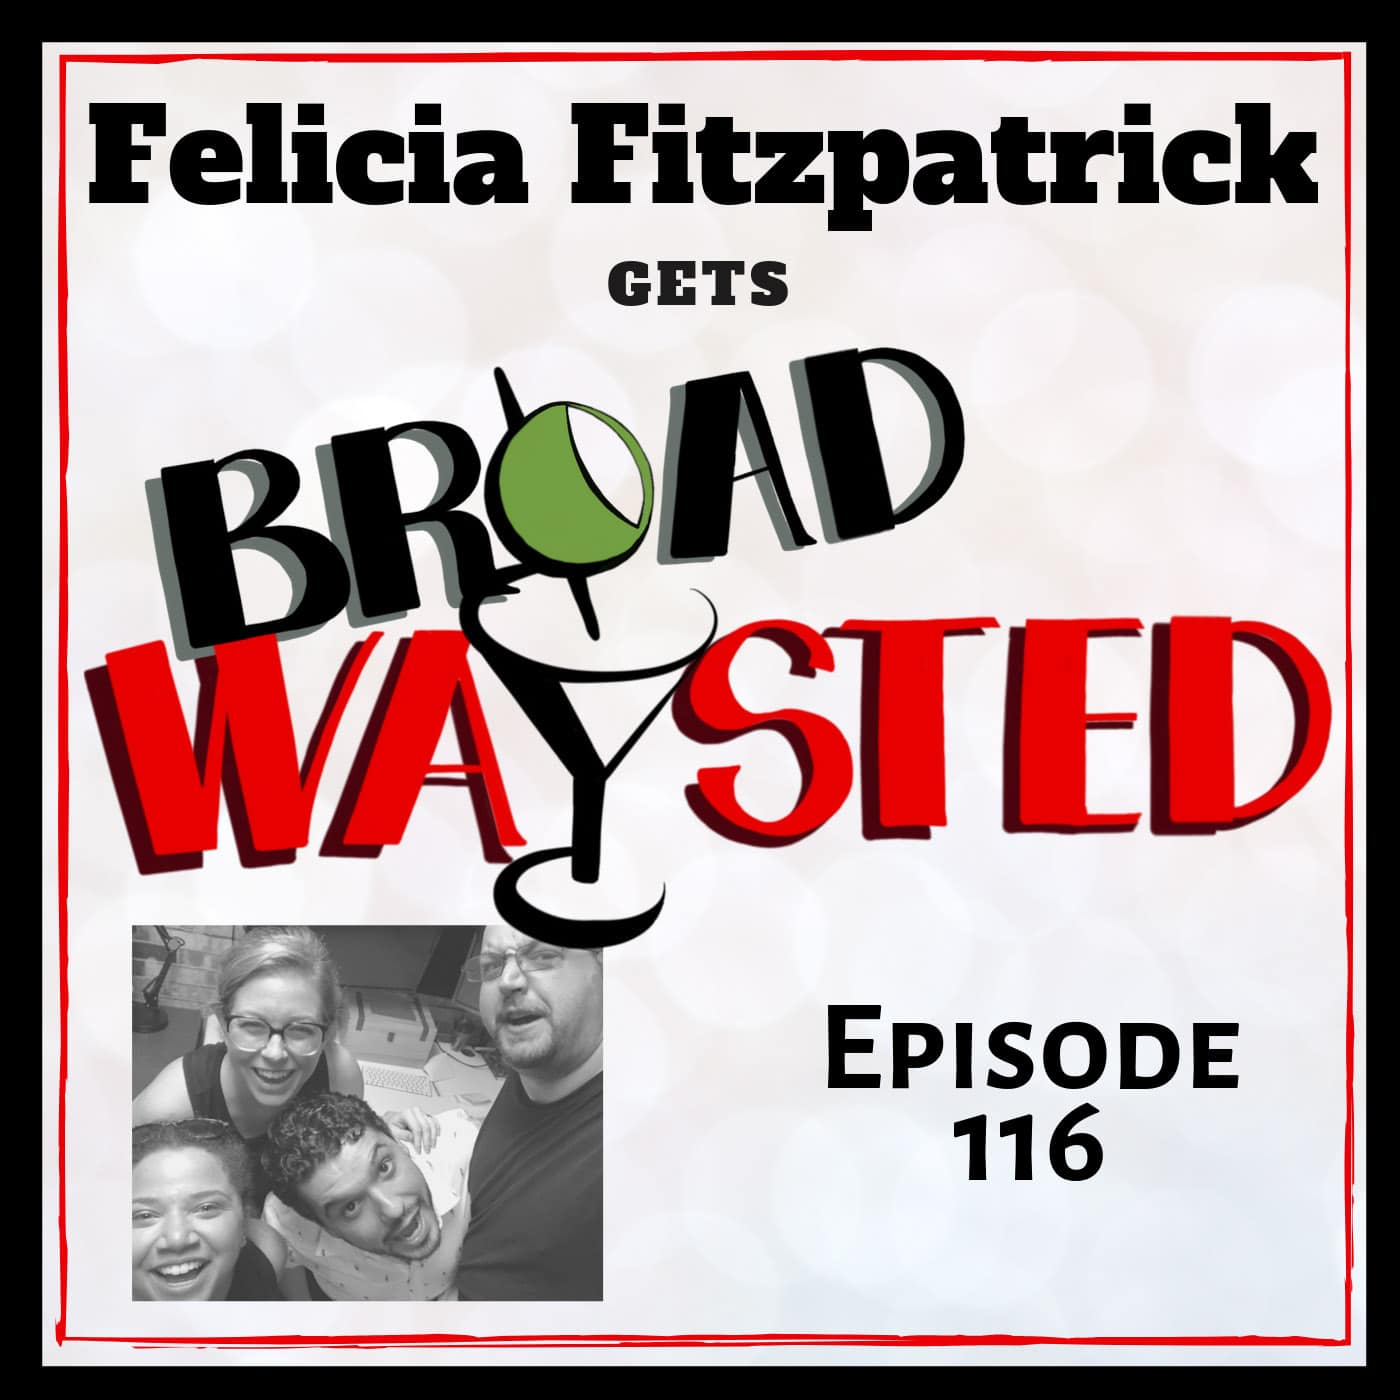 Broadwaysted Ep 116 Felicia Fitzpatrick